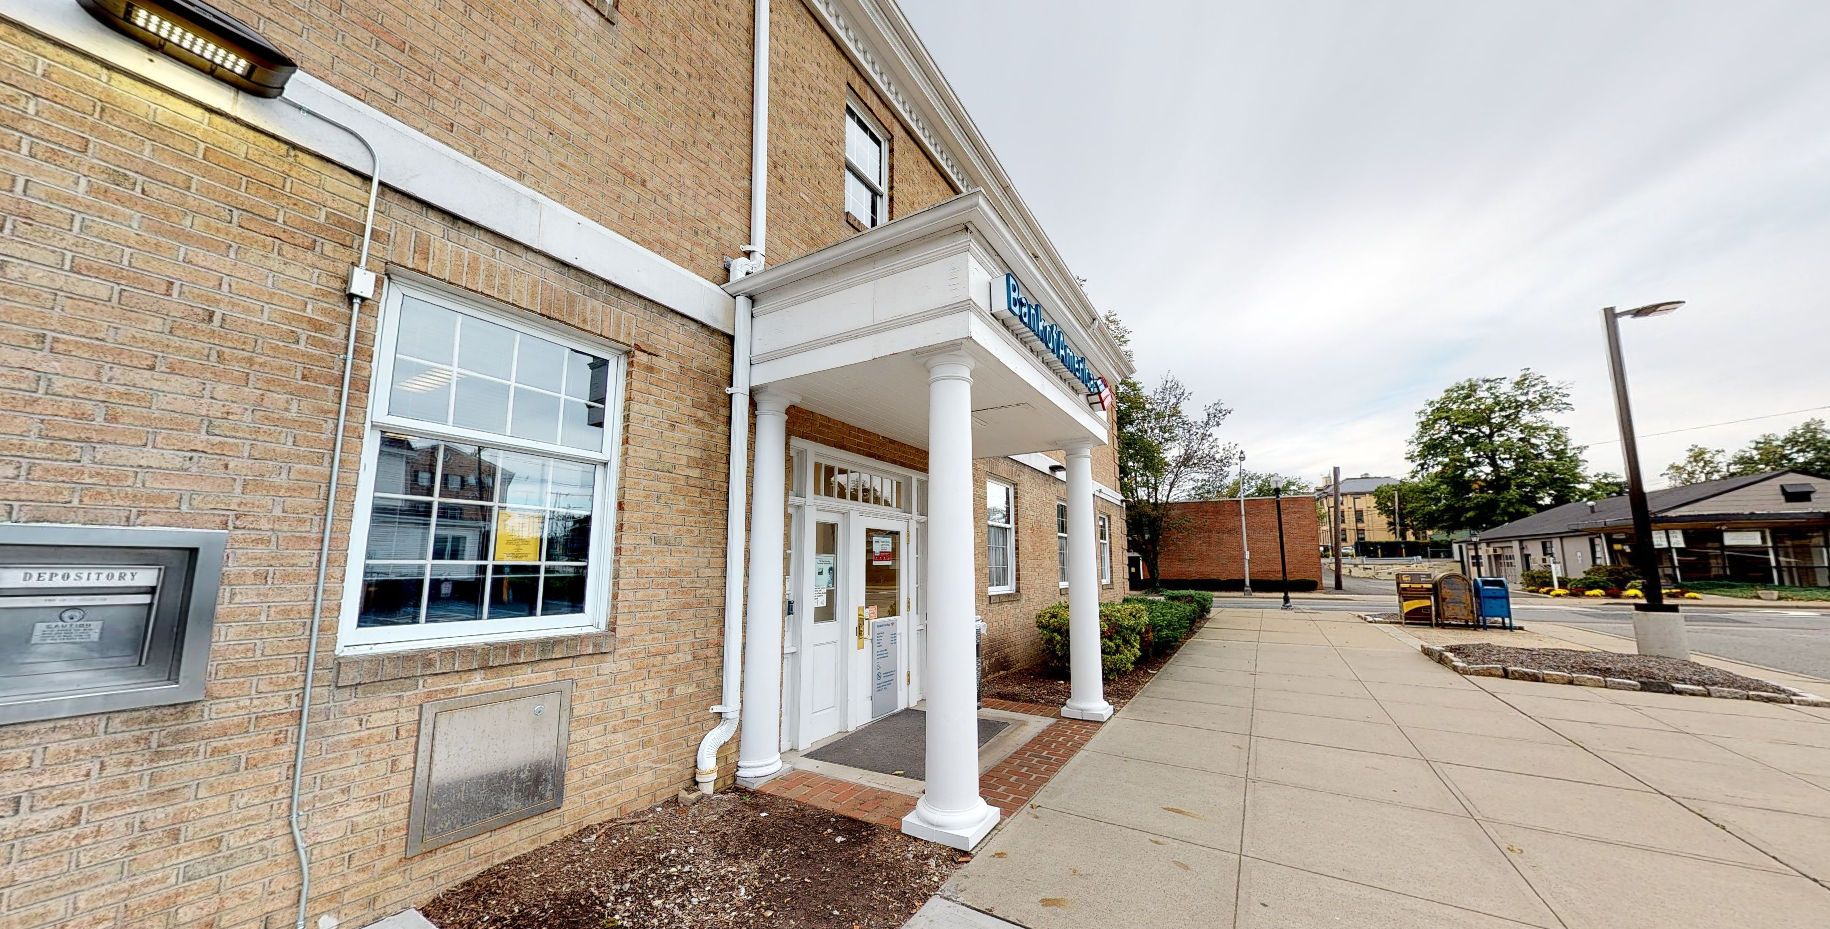 Bank of America financial center with drive-thru ATM | 25 N Maple Ave, Ridgewood, NJ 07450